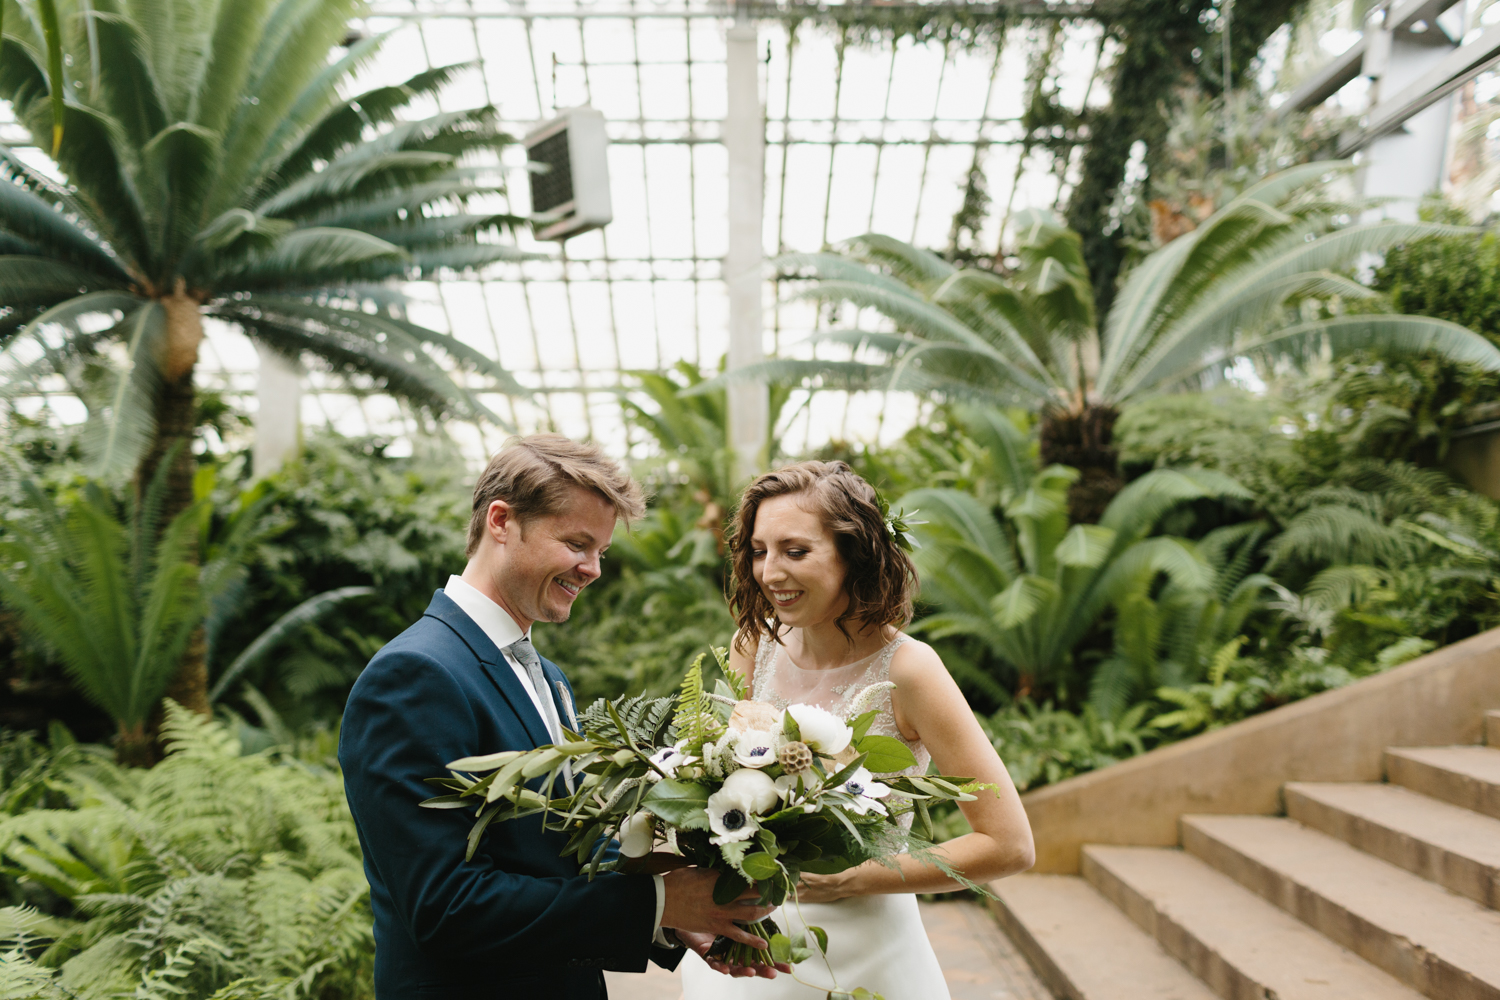 Chicago Garfield Park Conservatory Wedding by Northern Michigan Photographer Mae Stier-034.jpg